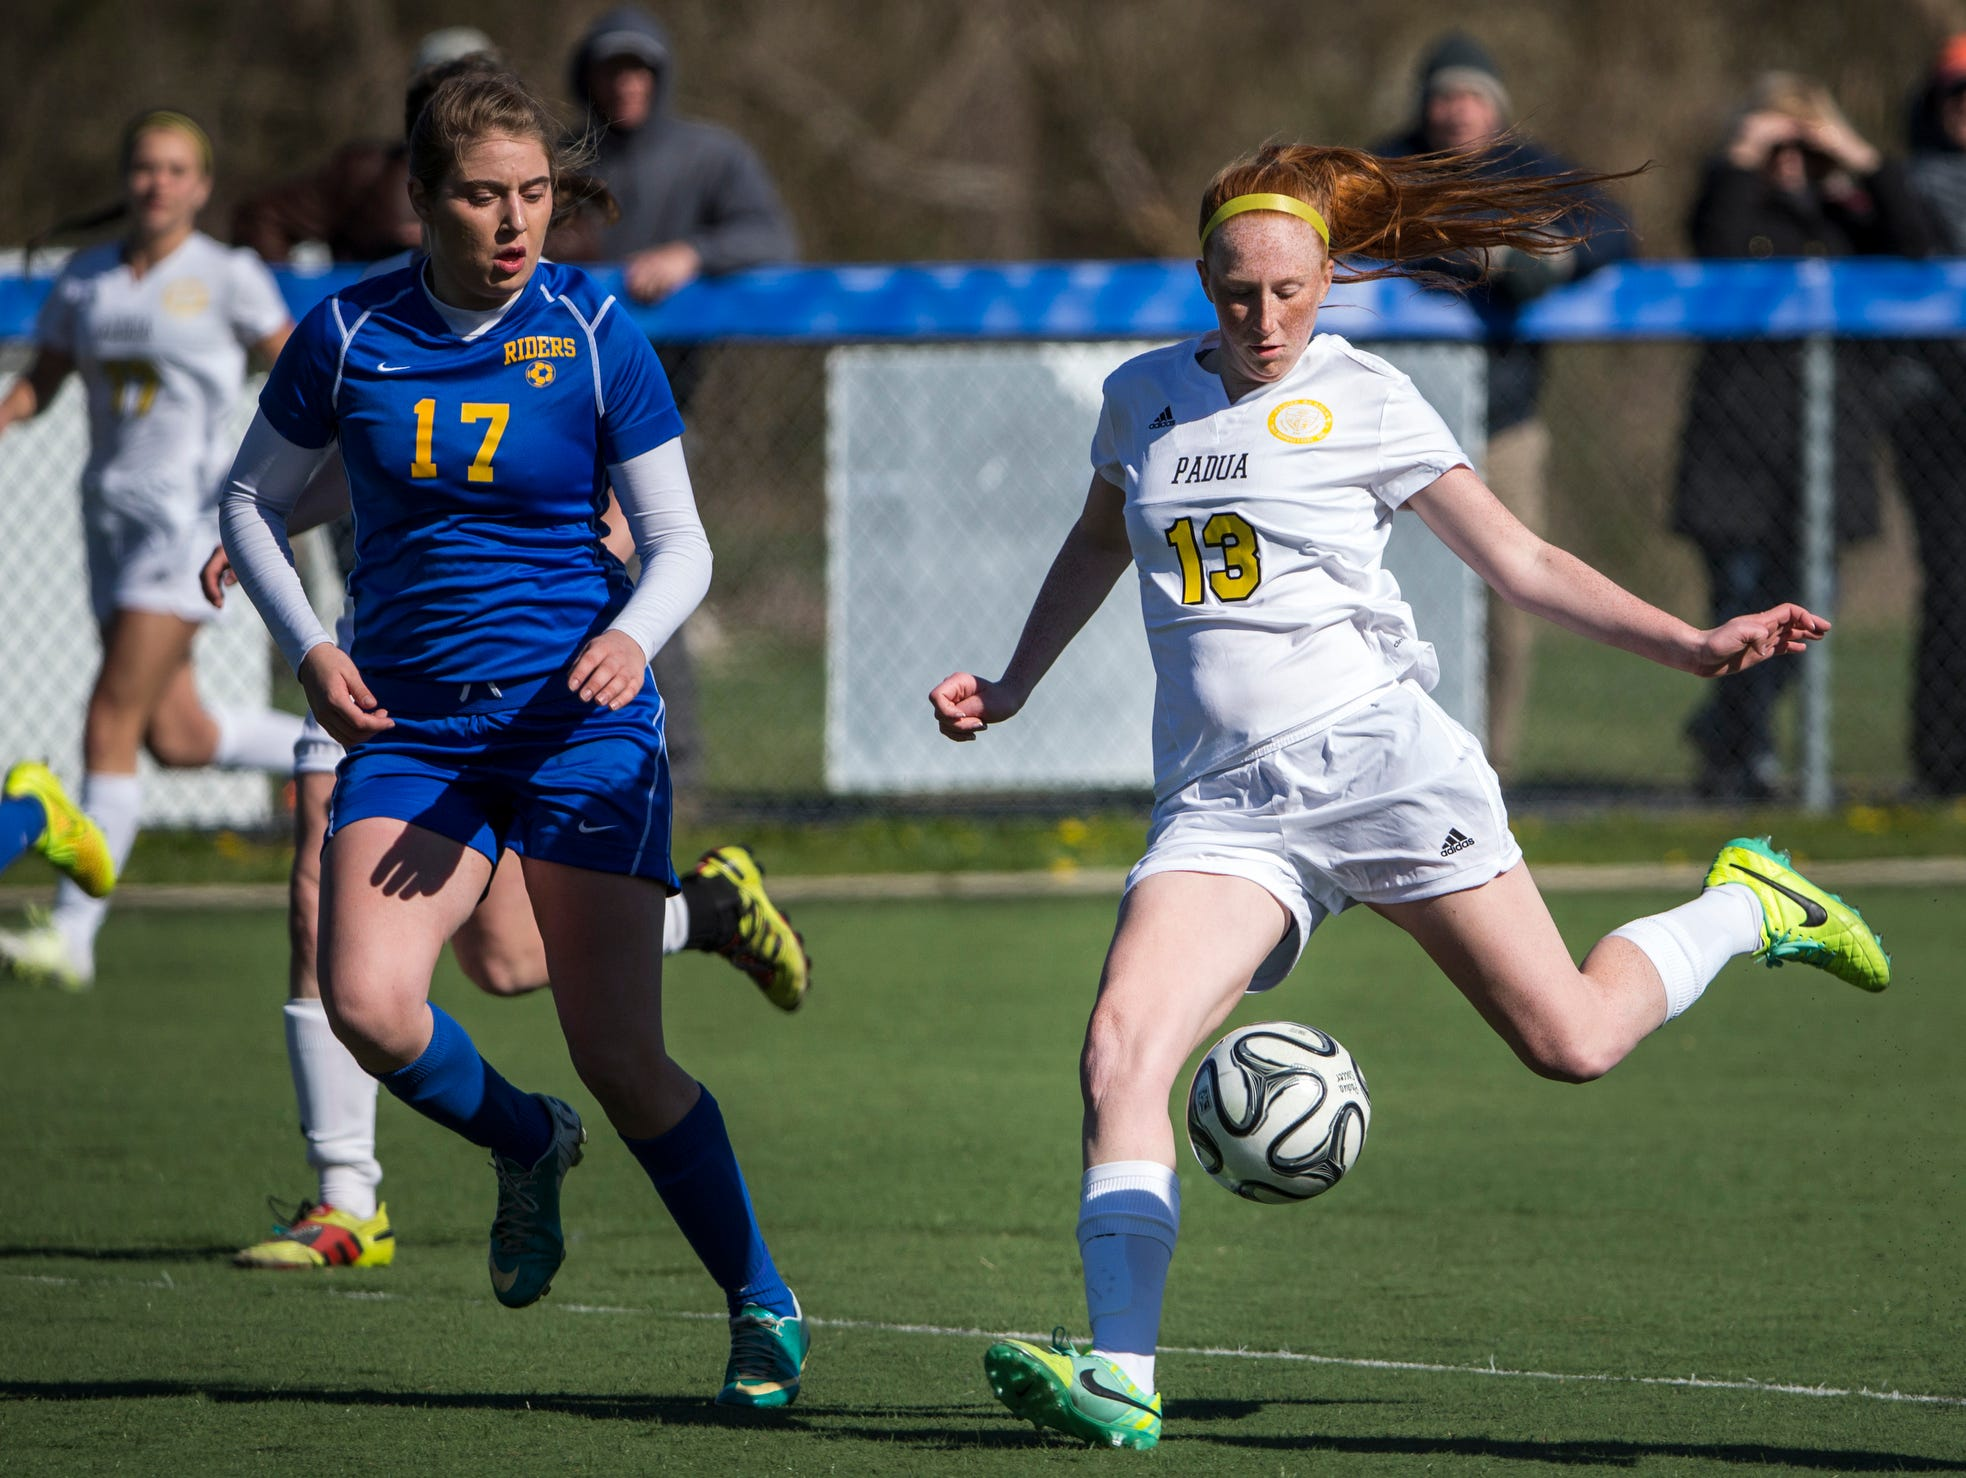 Padua's Megan Mallon (right) puts a shot on goal in the second half of Padua's 2-0 win over Caesar Rodney at the Hockessin Soccer Club on Tuesday afternoon.